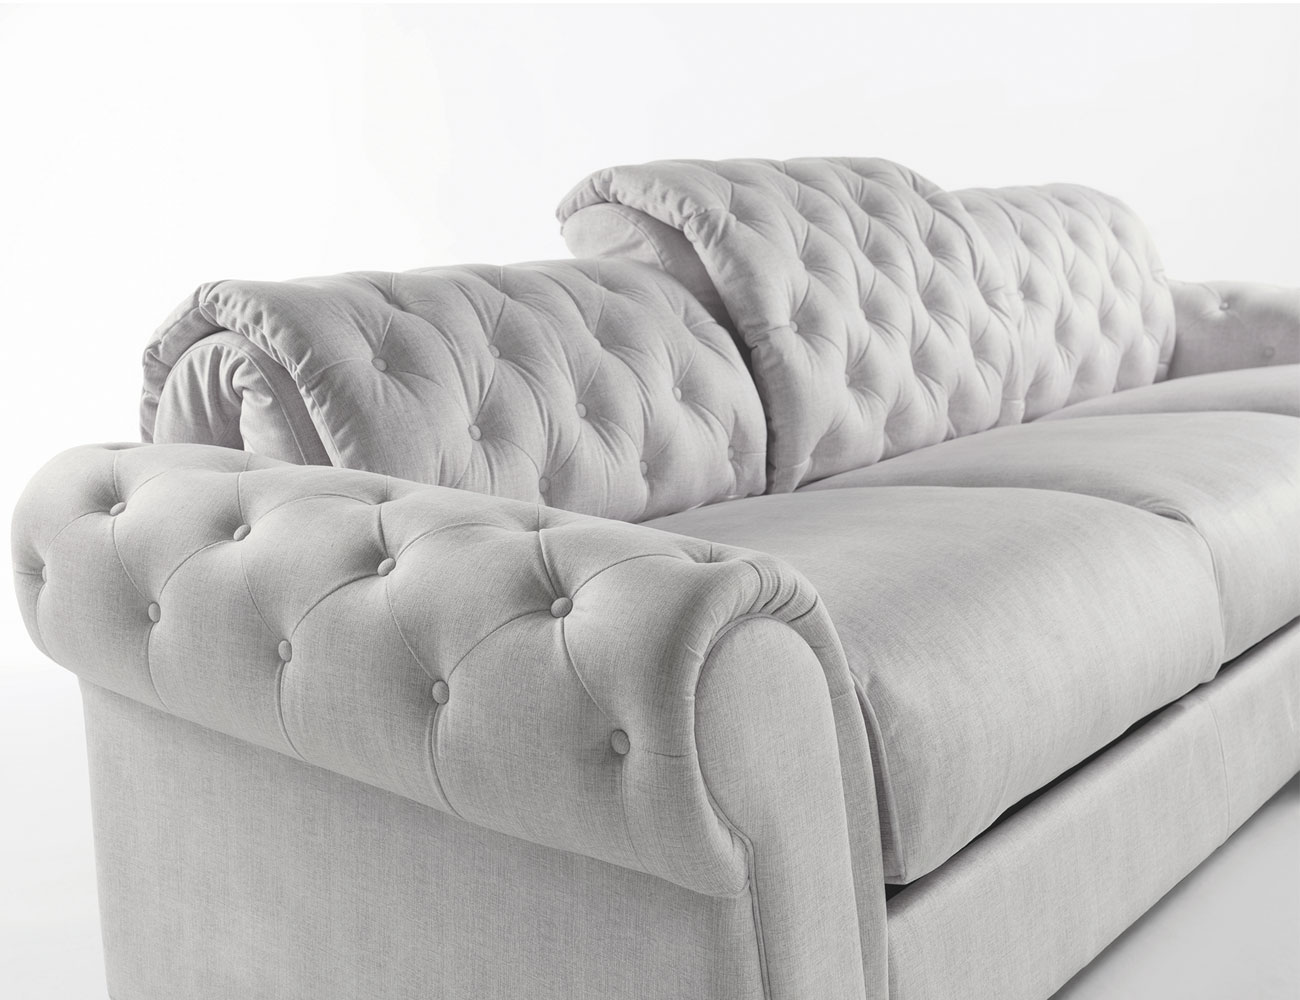 Sofa chaiselongue gran lujo decorativo capitone blanco tela 149